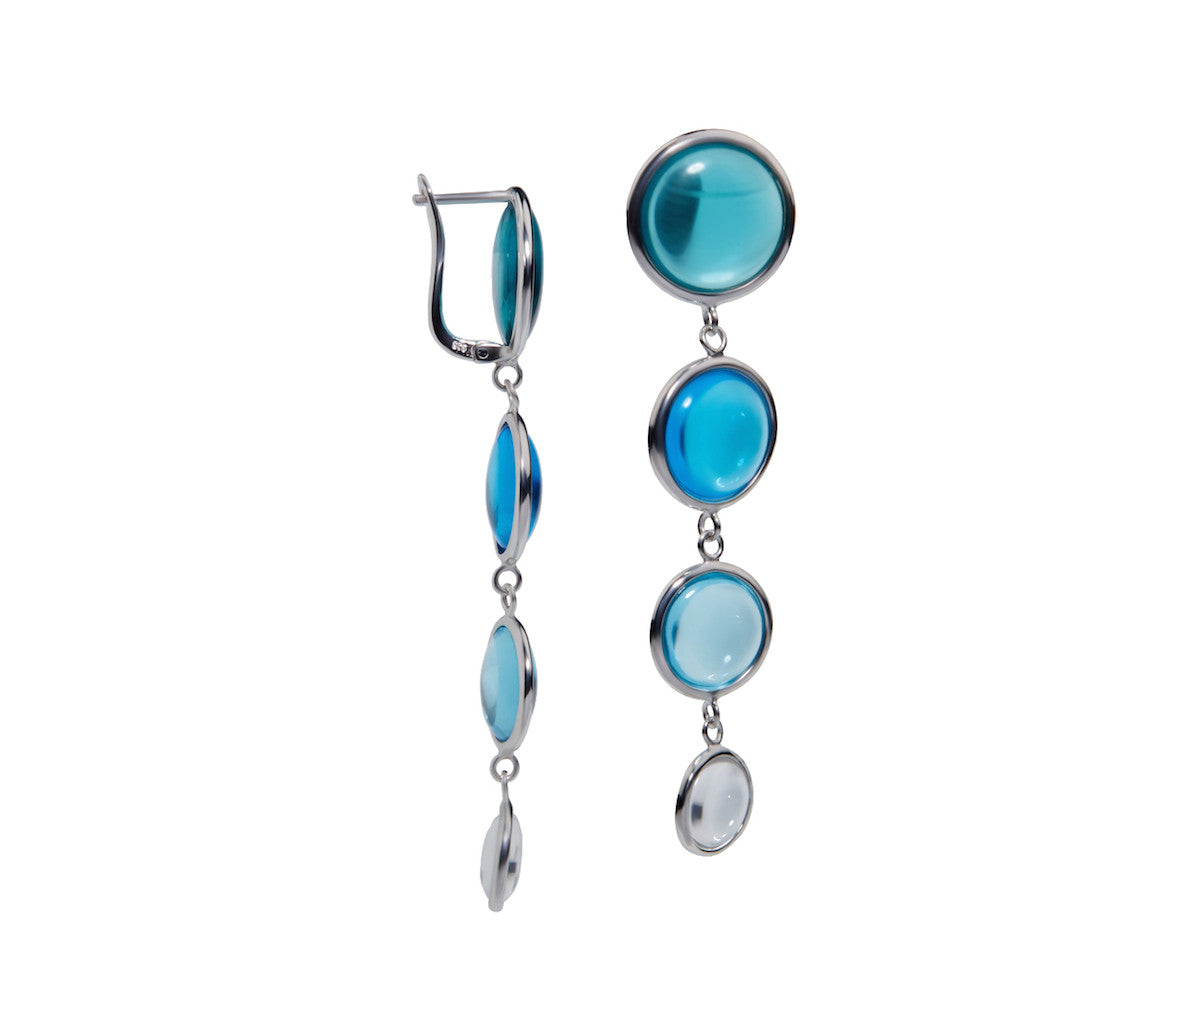 Blue Tourmaline, Blue Topaz, Aquamarine & Crystal Obsidian Earrings